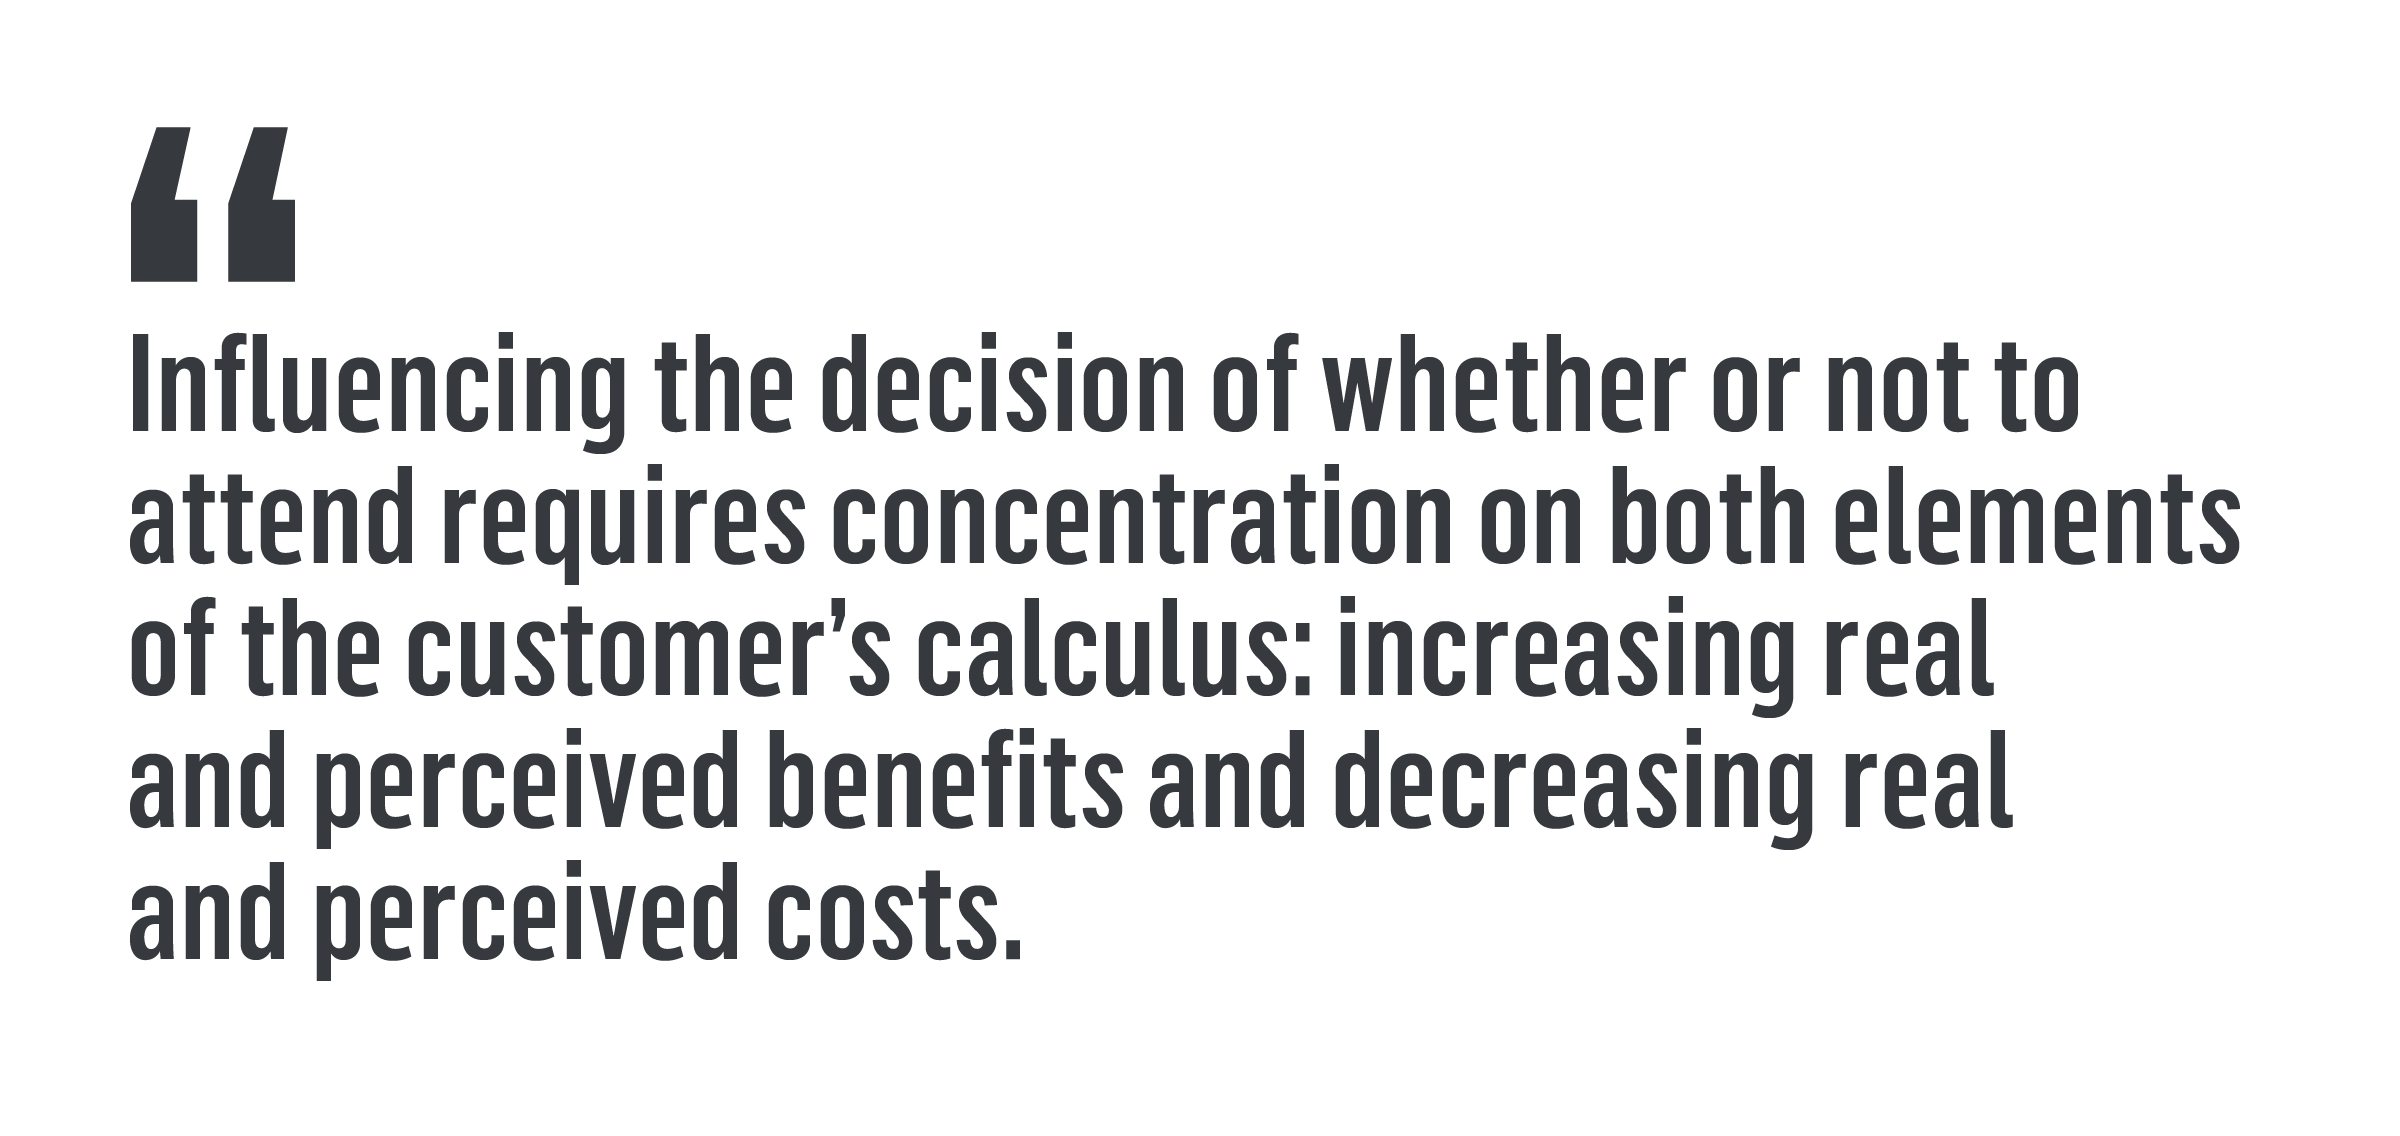 """Influencing the decision of whether or not to attend requires concentration on both elements of the customer's calculus: increasing real and perceived benefits and decreasing real and perceived costs."""